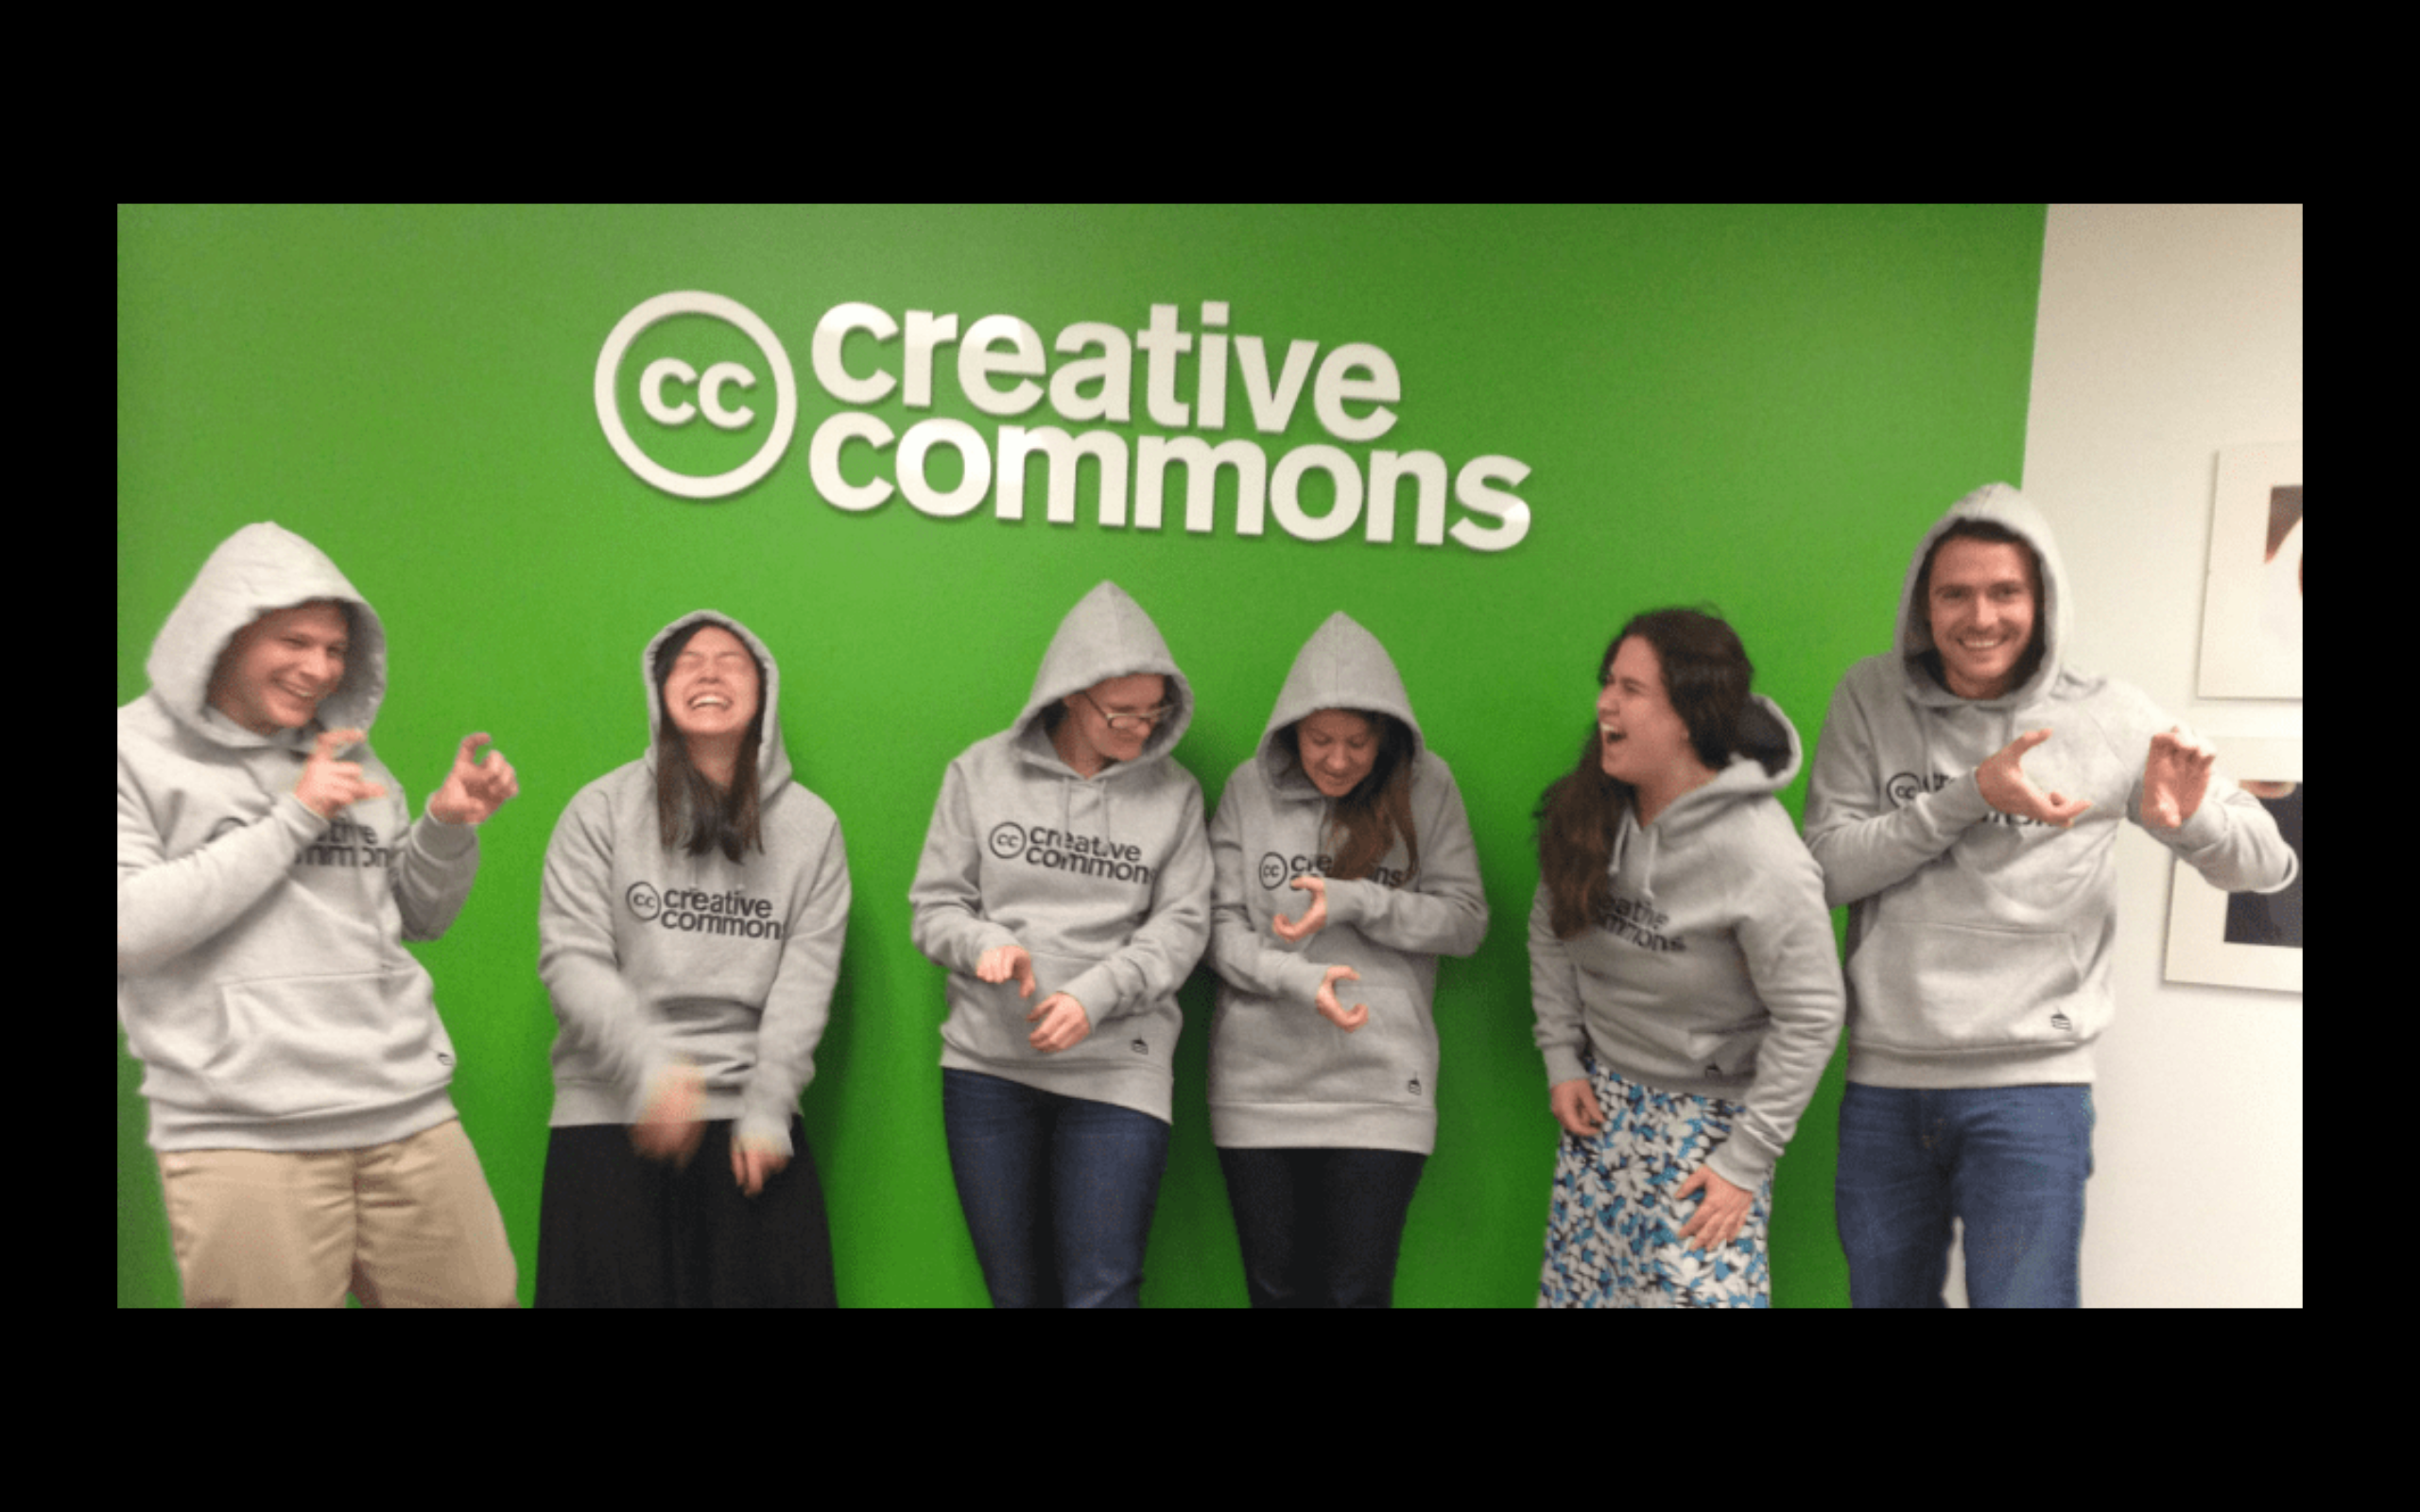 Billy and employees at Creative Commons in 2014